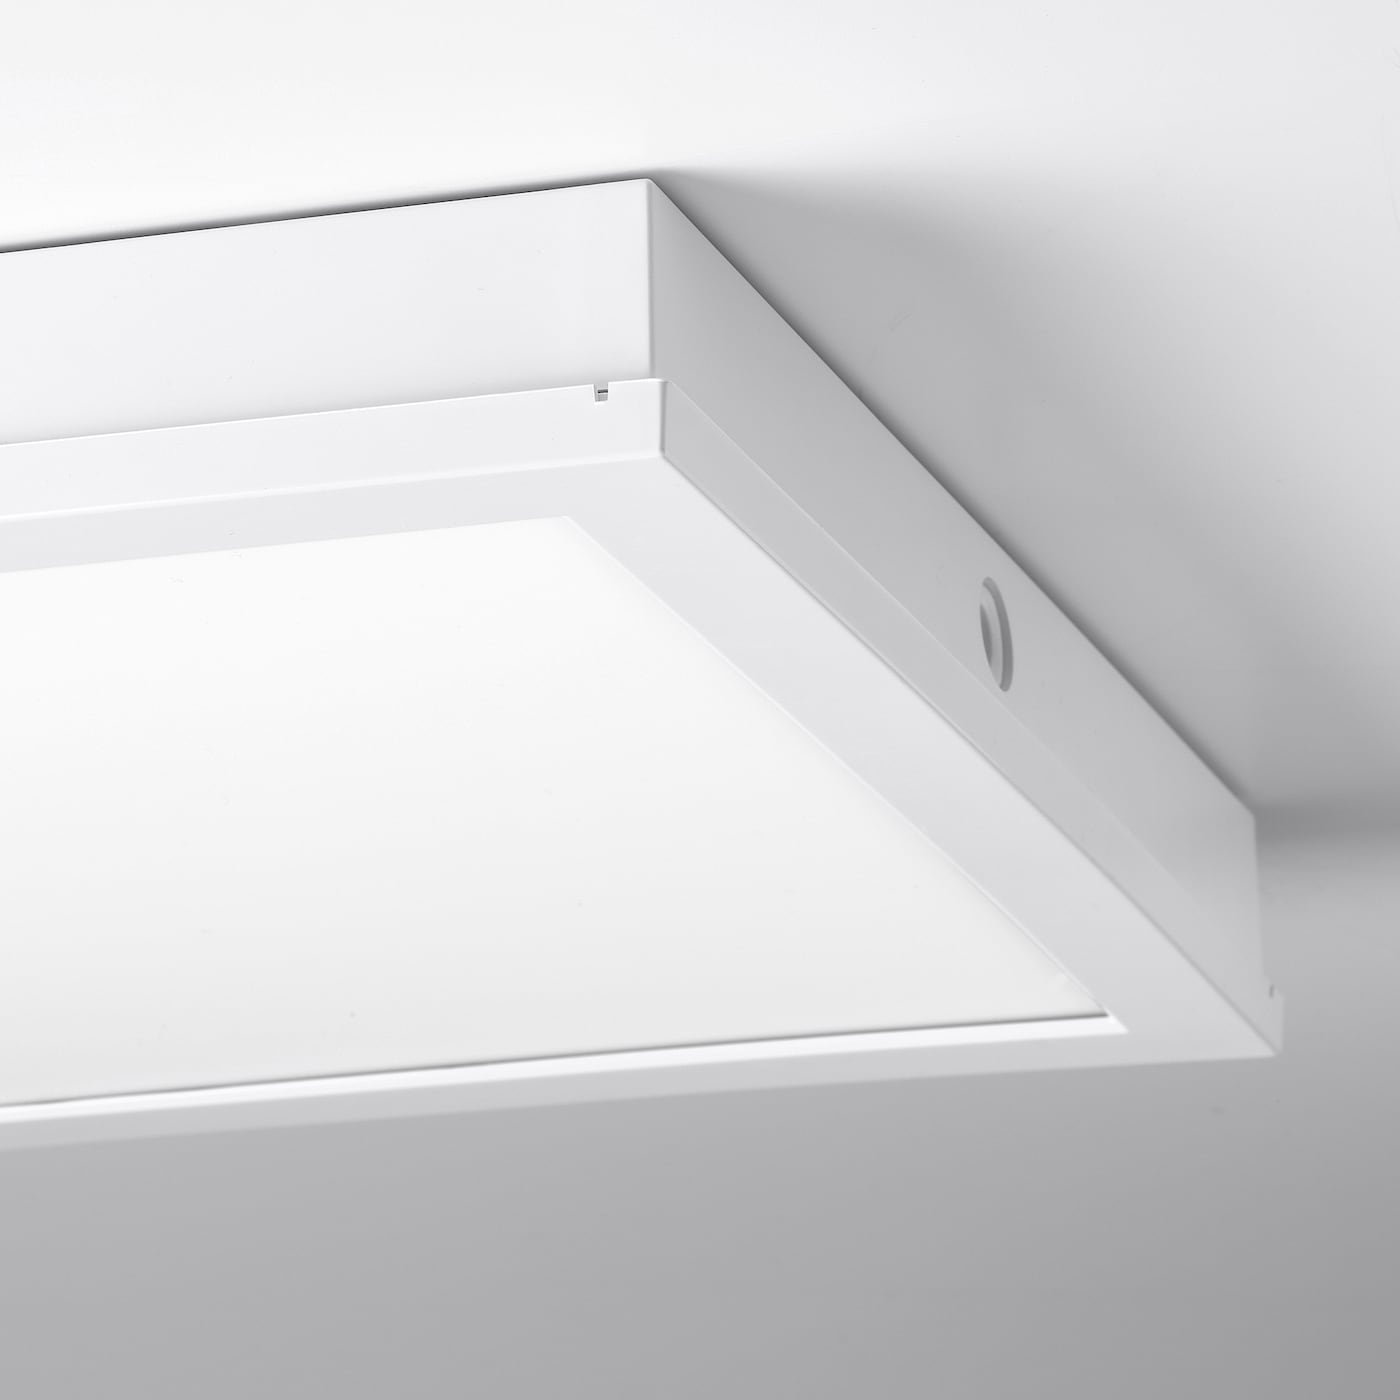 GUNNARP LED ceiling/wall lamp white dimmable/white spectrum 1500 lm 40 cm 40 cm 5 cm 22 W